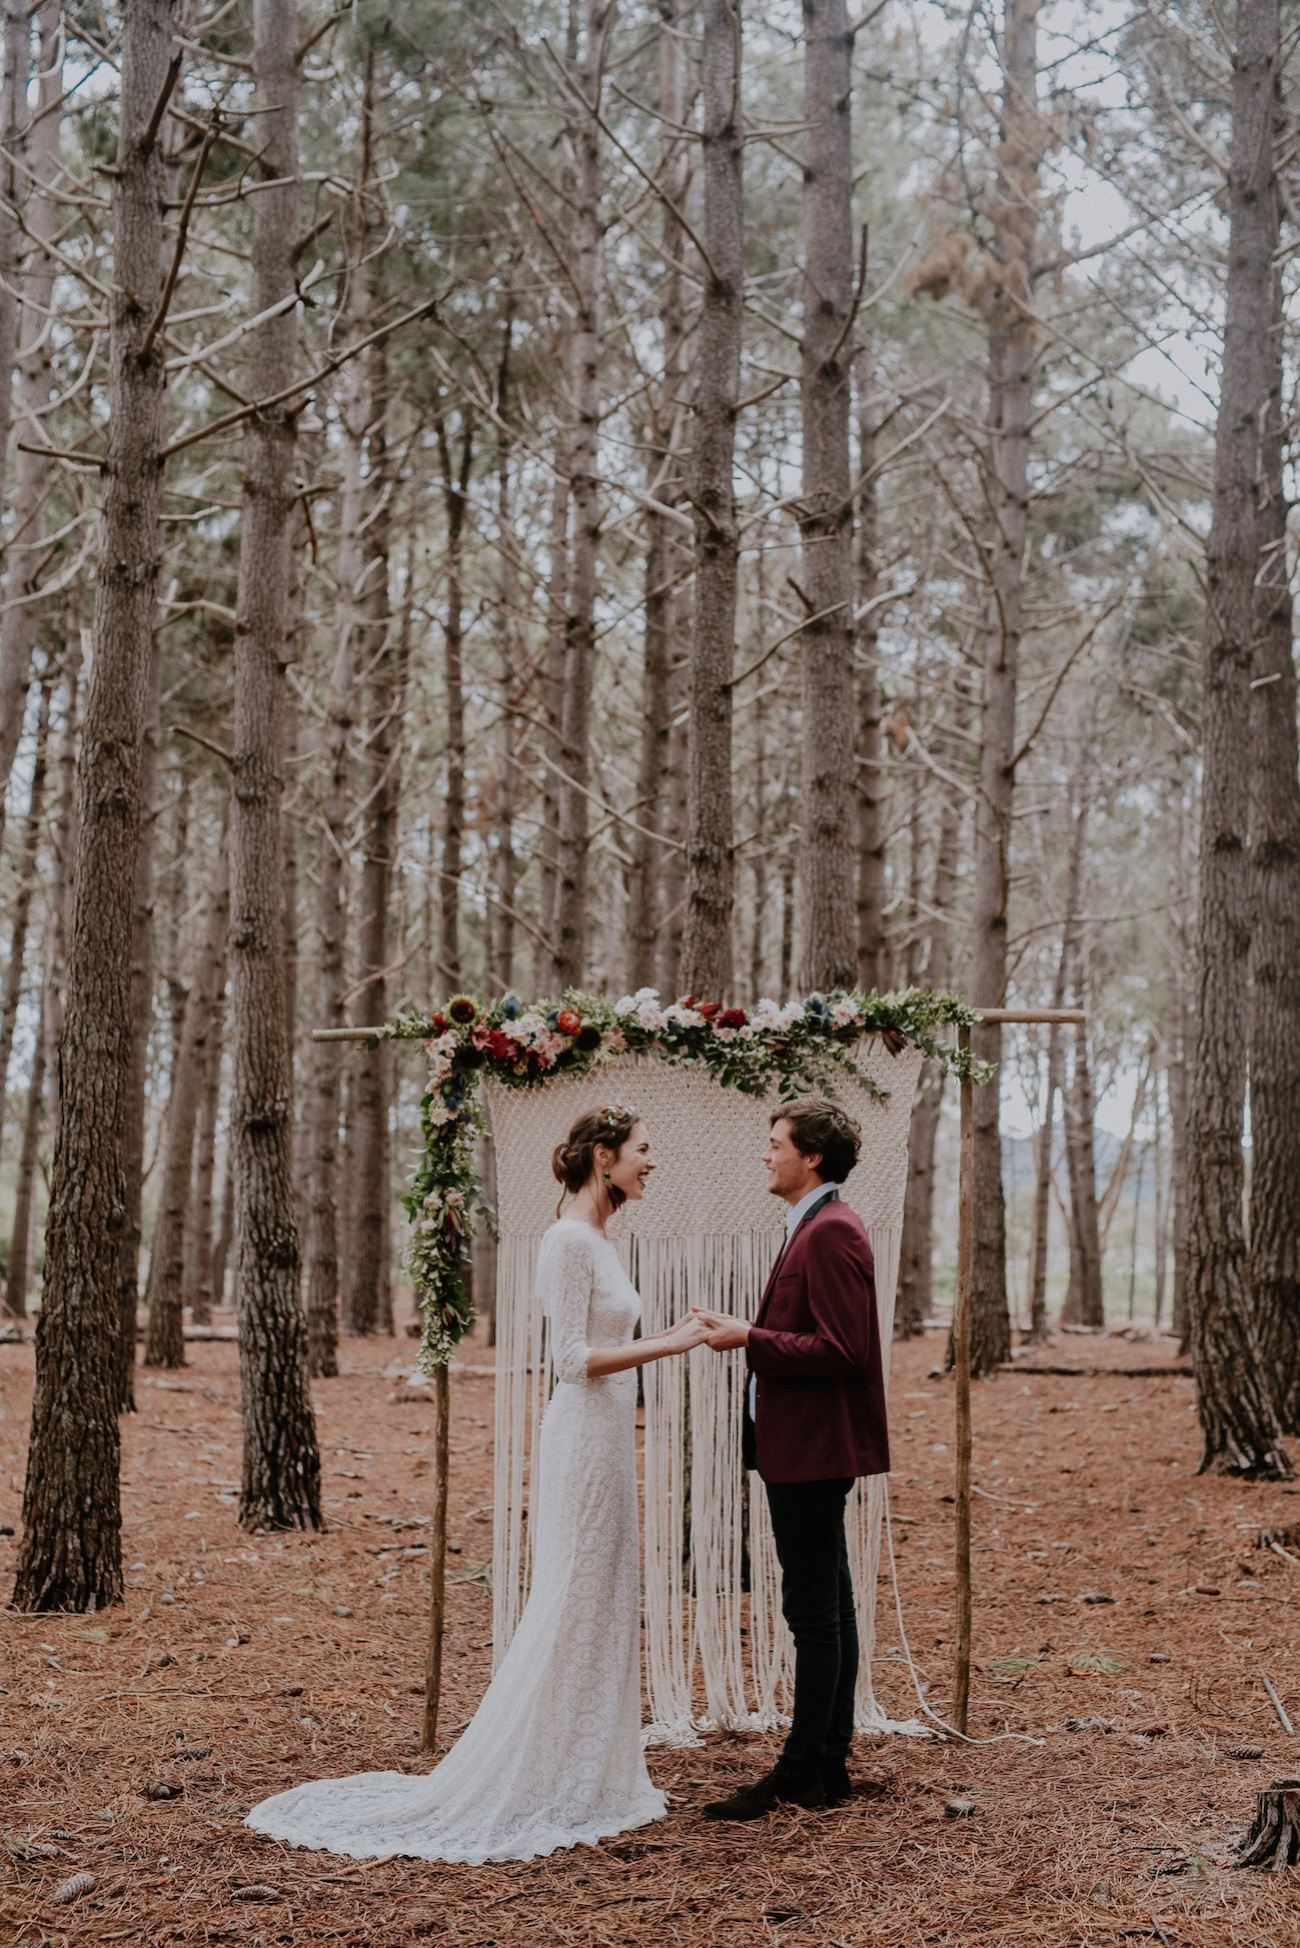 Woodland Wedding Ceremony | Credit: Lad & Lass Photography